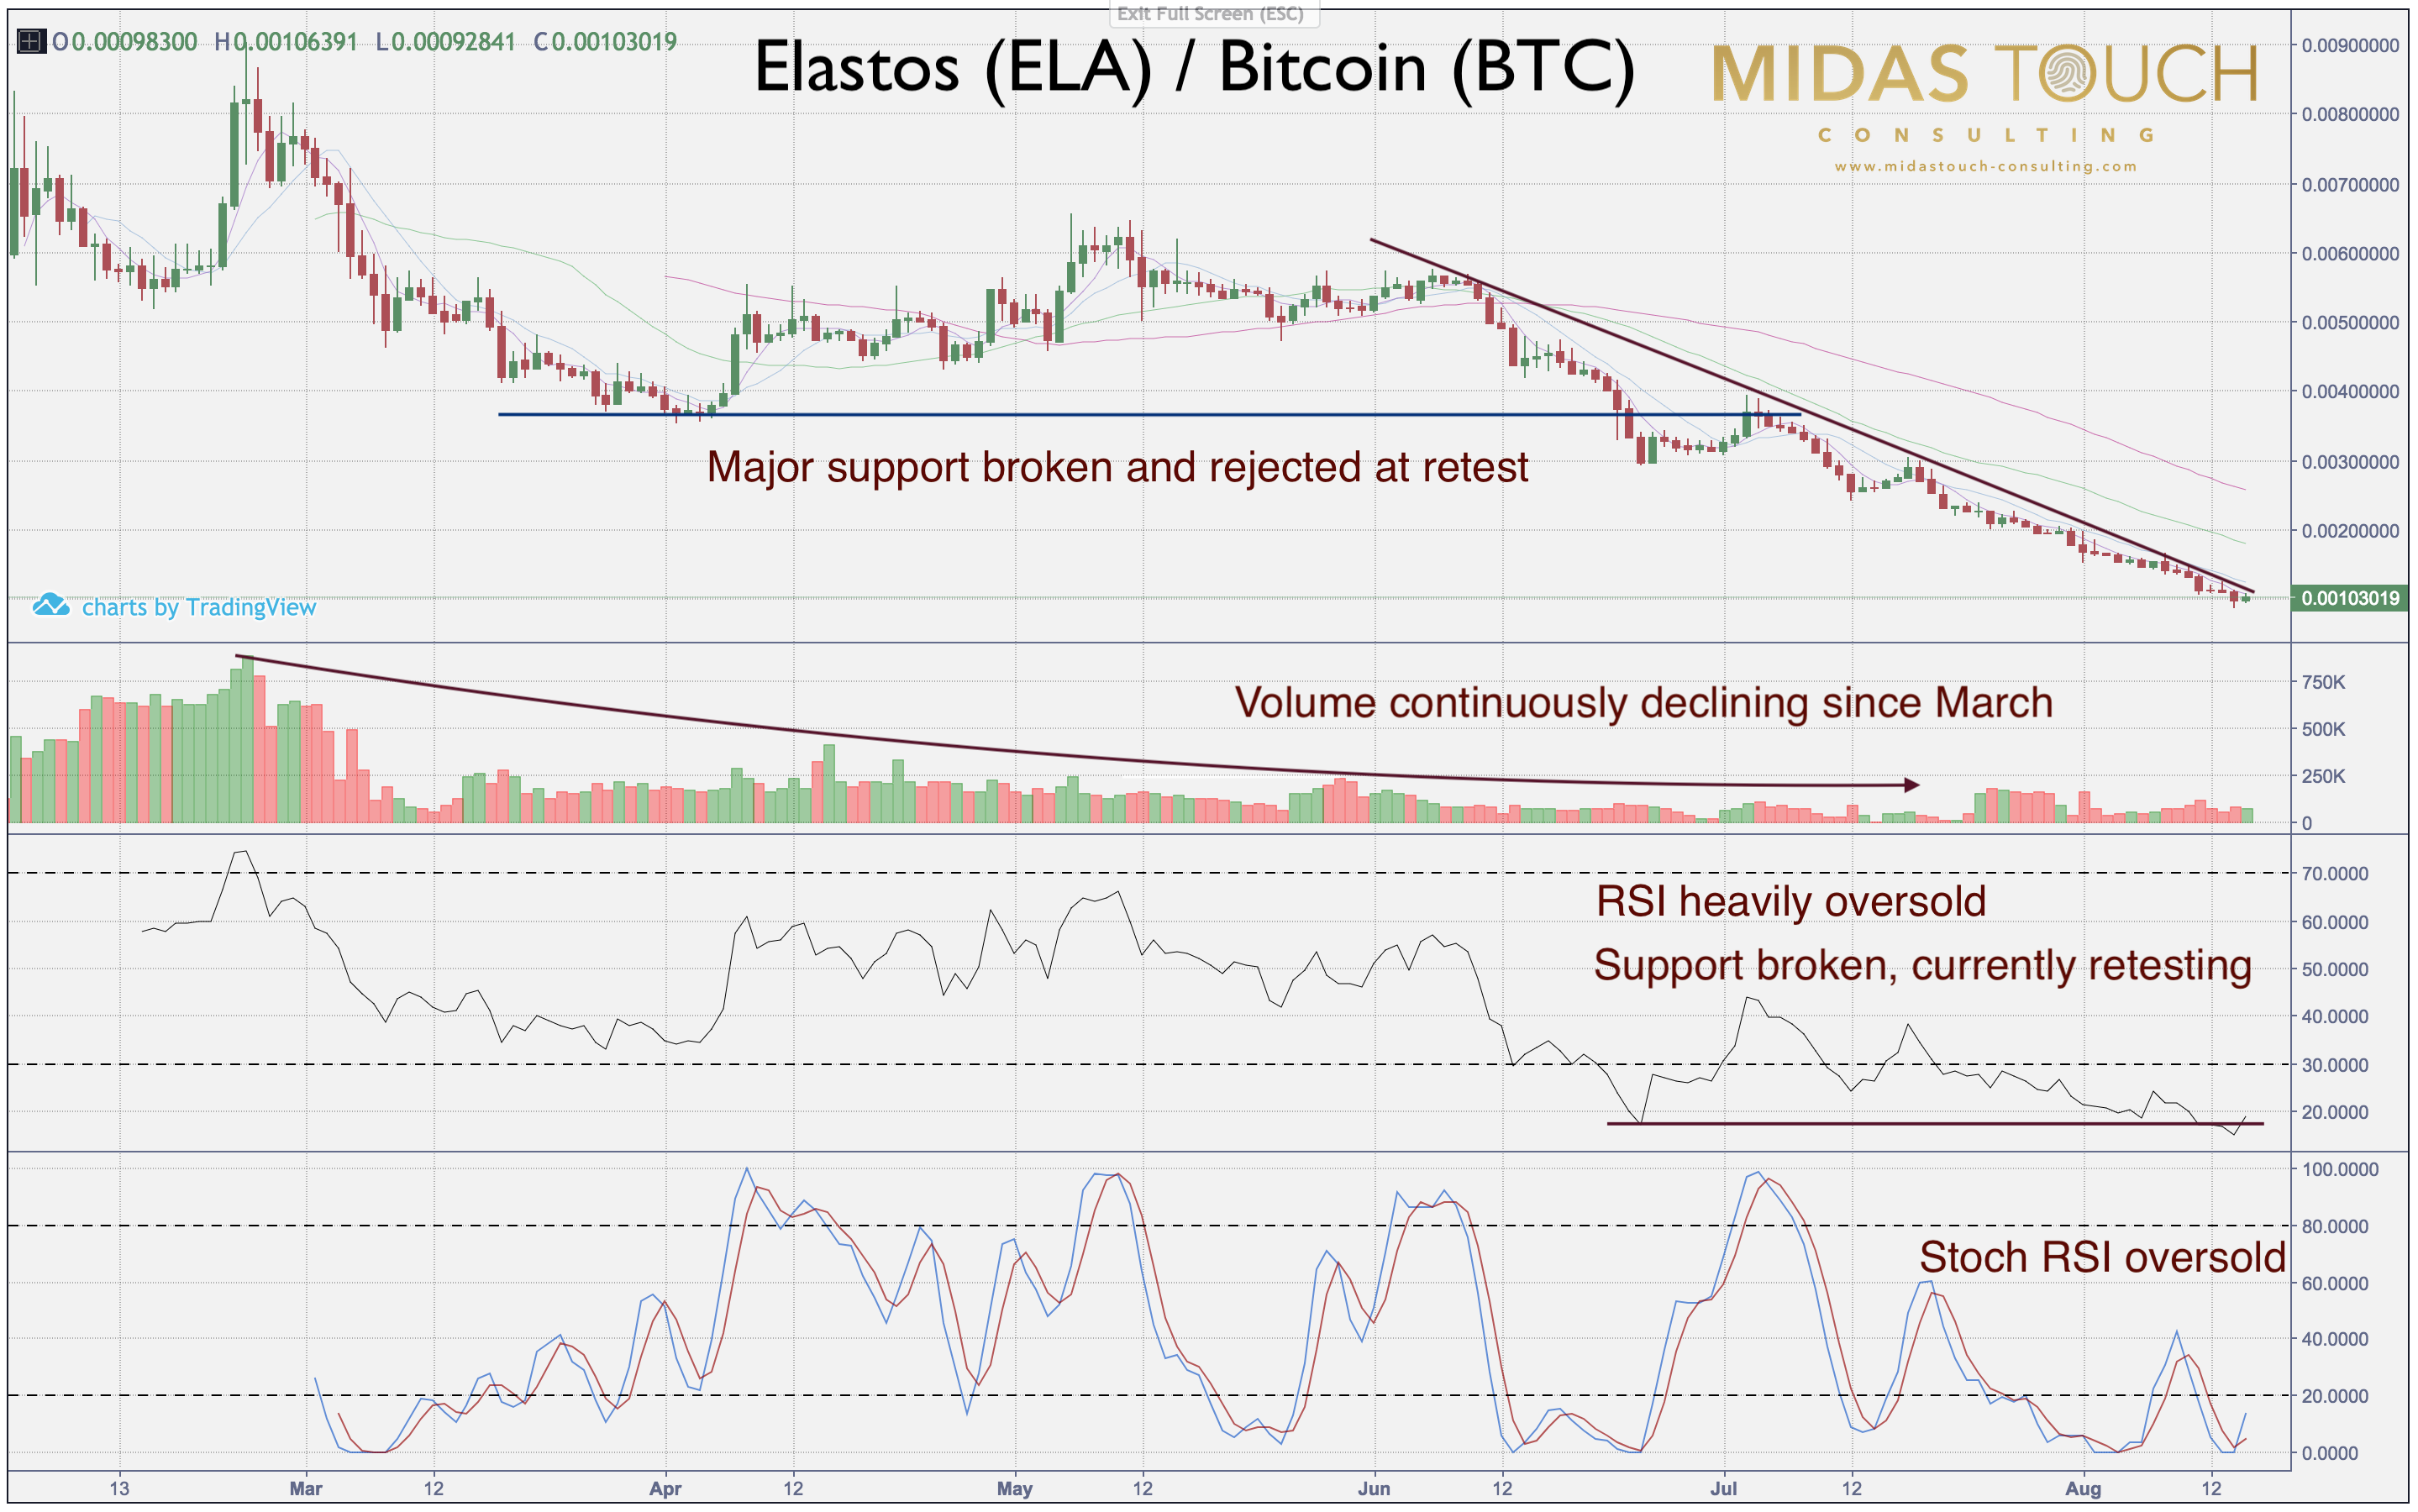 Elastos (ELA) / Bitcoin (BTC) daily chart, August 15th 2018.